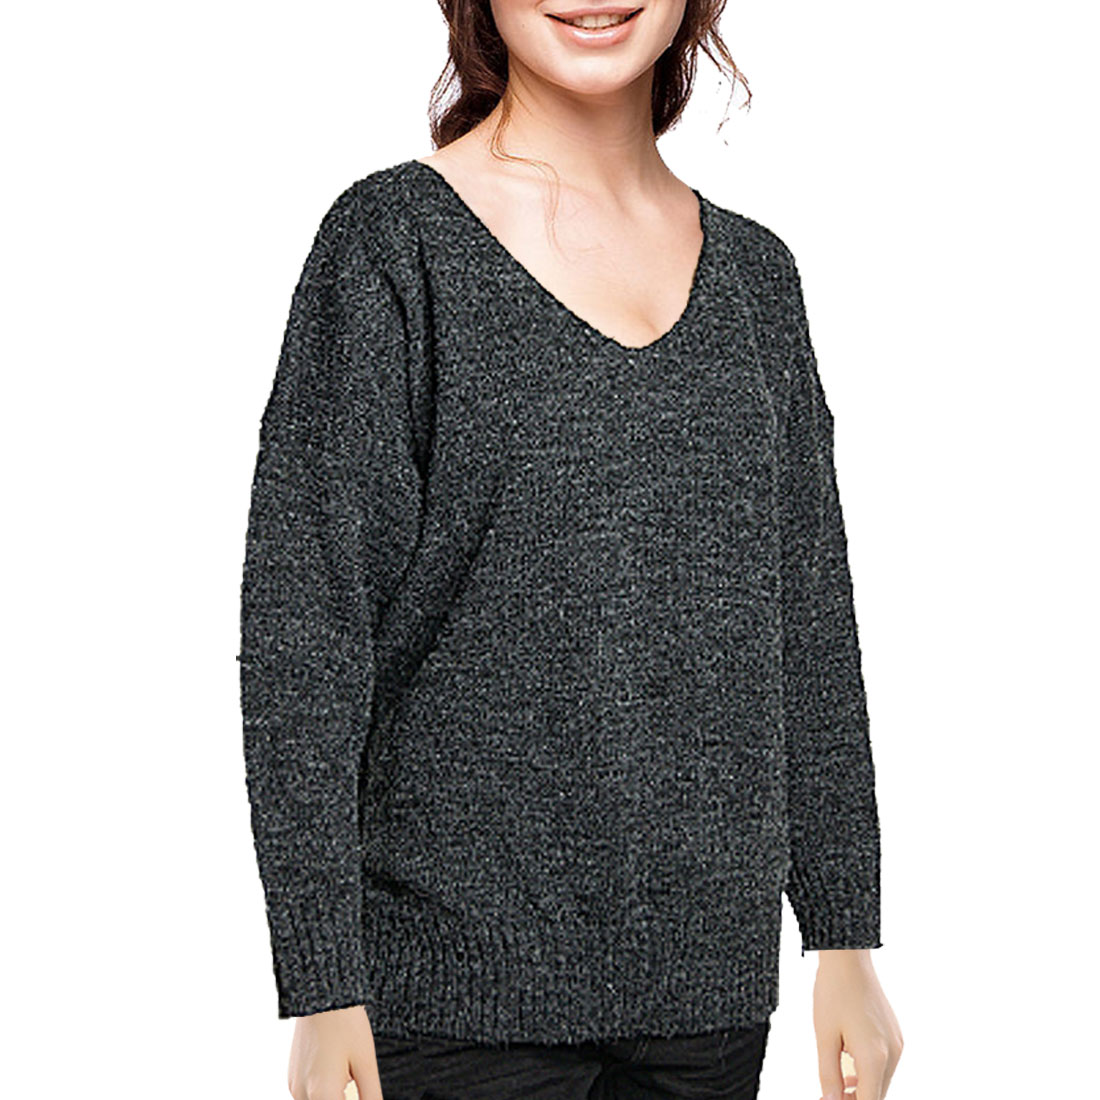 Double V Neck Knitted Pullover Sweater for Ladies S